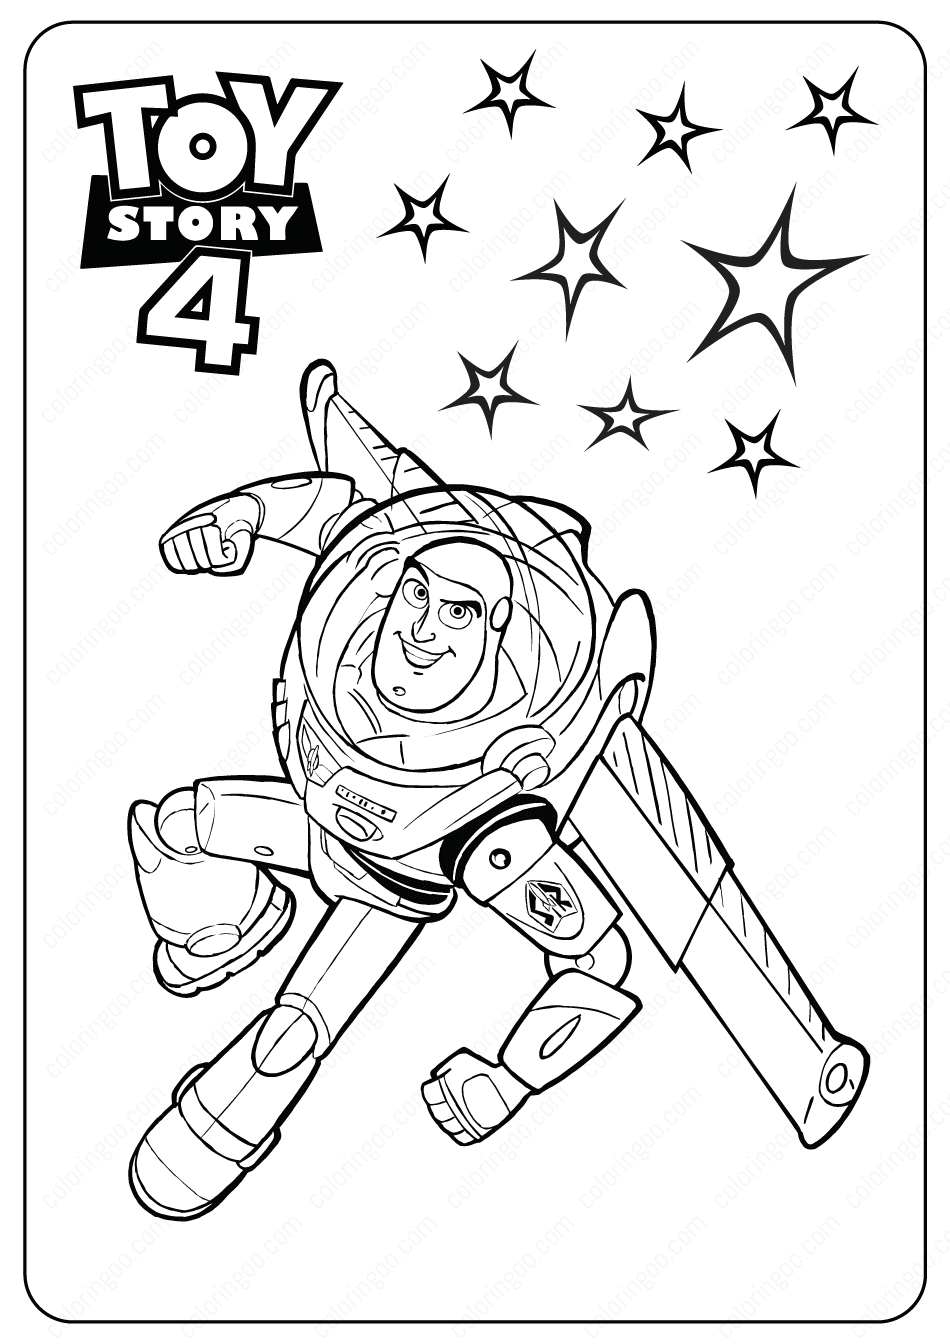 buzz toy story 4 coloring pages free printable buzz lightyear coloring pages for kids toy 4 coloring pages buzz story